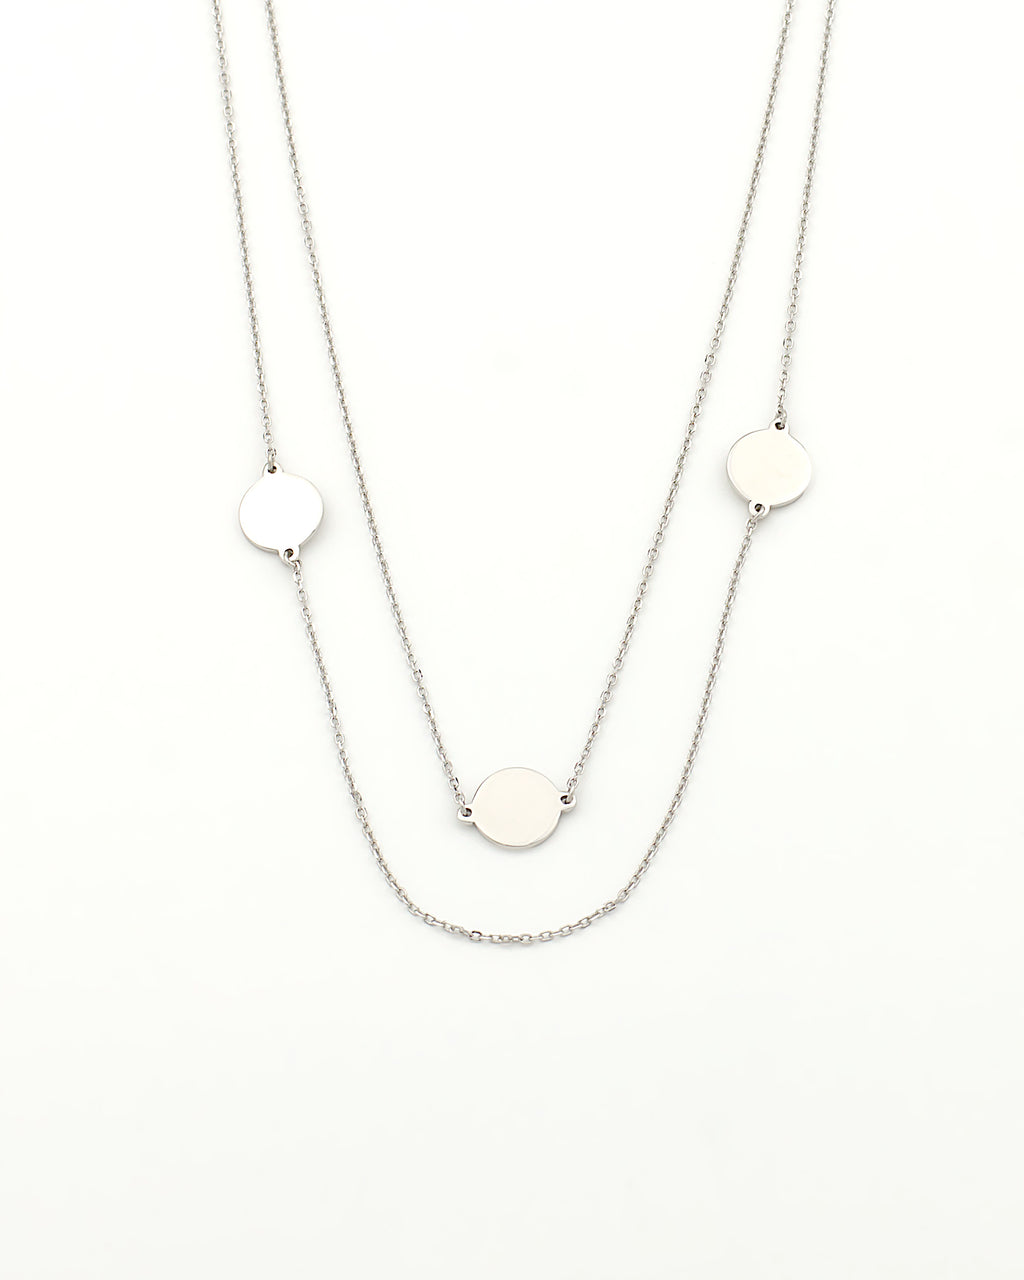 minimalist chic boho layered necklace with three discs